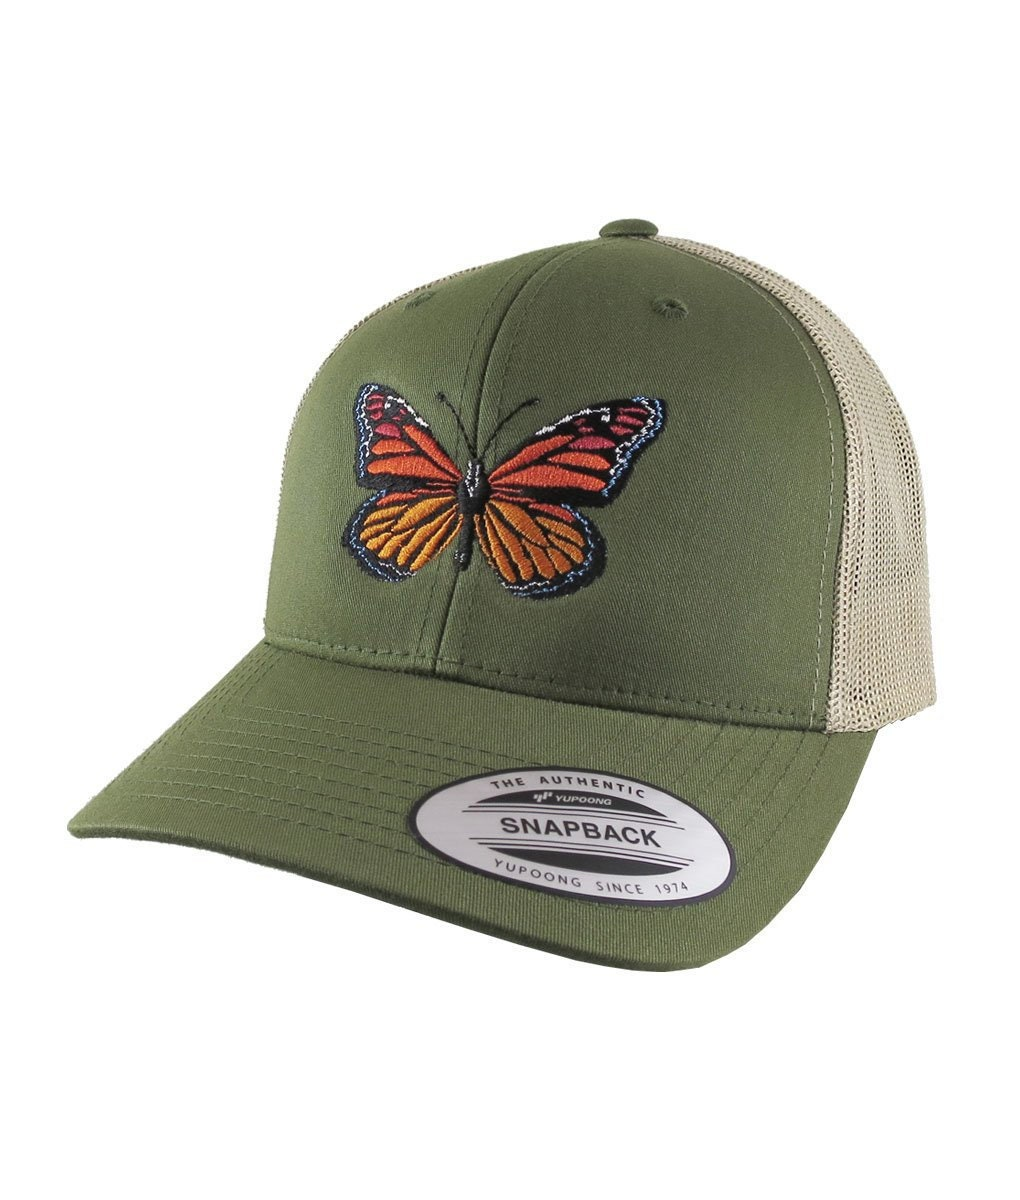 2be13c41f5f Monarch Butterfly Embroidery on an Adjustable Olive Green and Tan Yupoong  Structured Classic Trucker Style Snapback Ball Cap